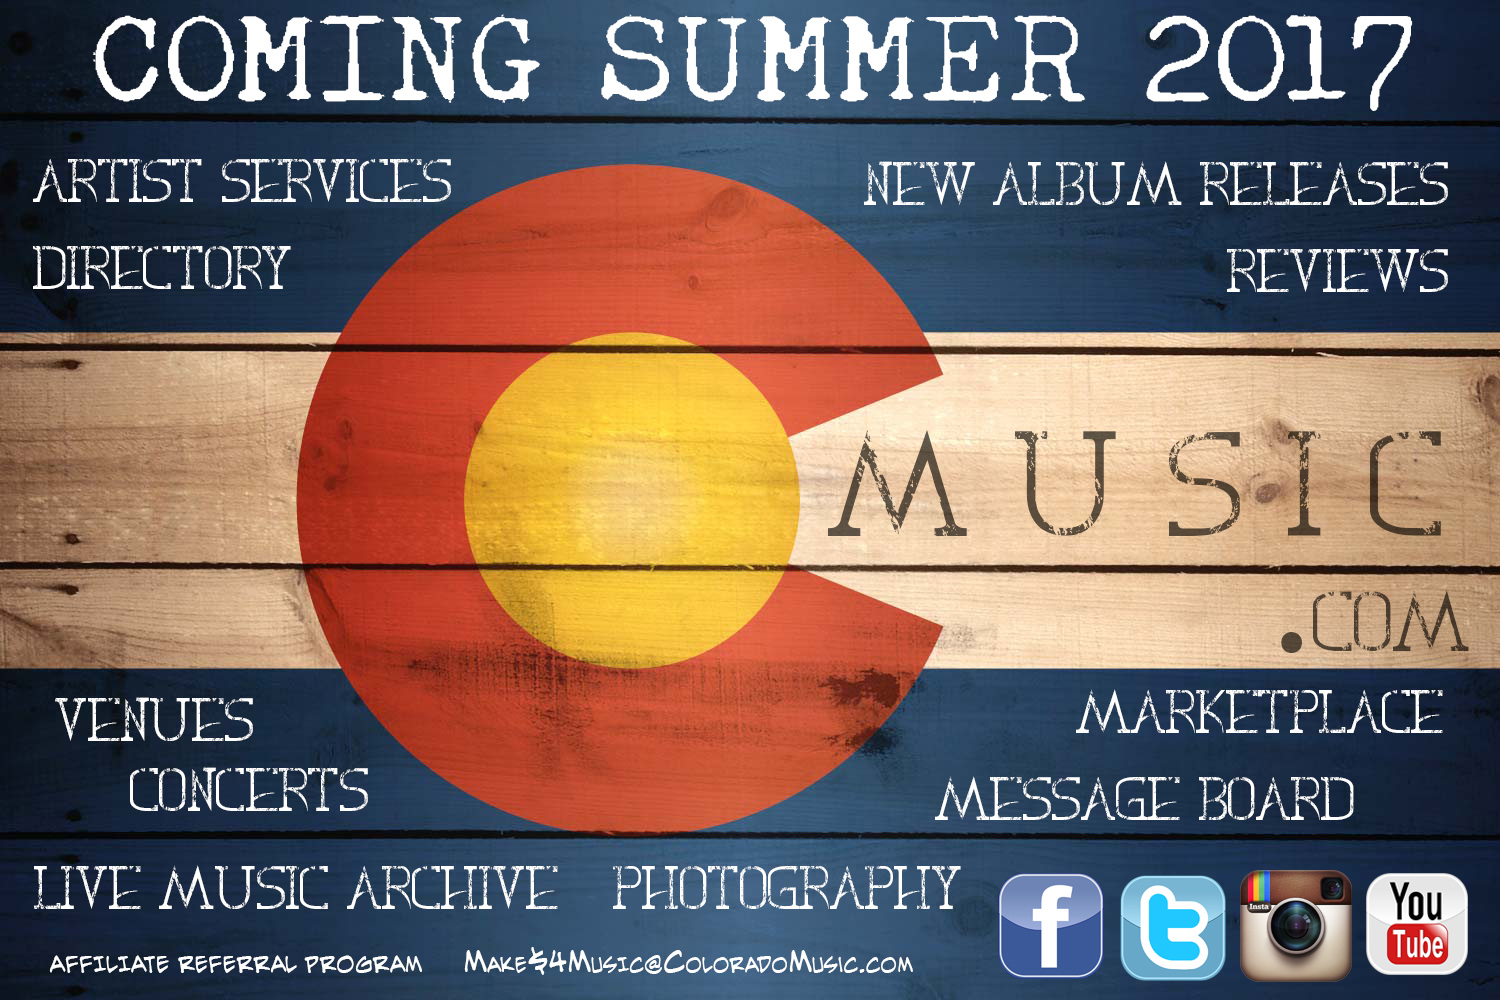 Coming Summer 2017 - Colorado Music, venues, concerts, live music, photography